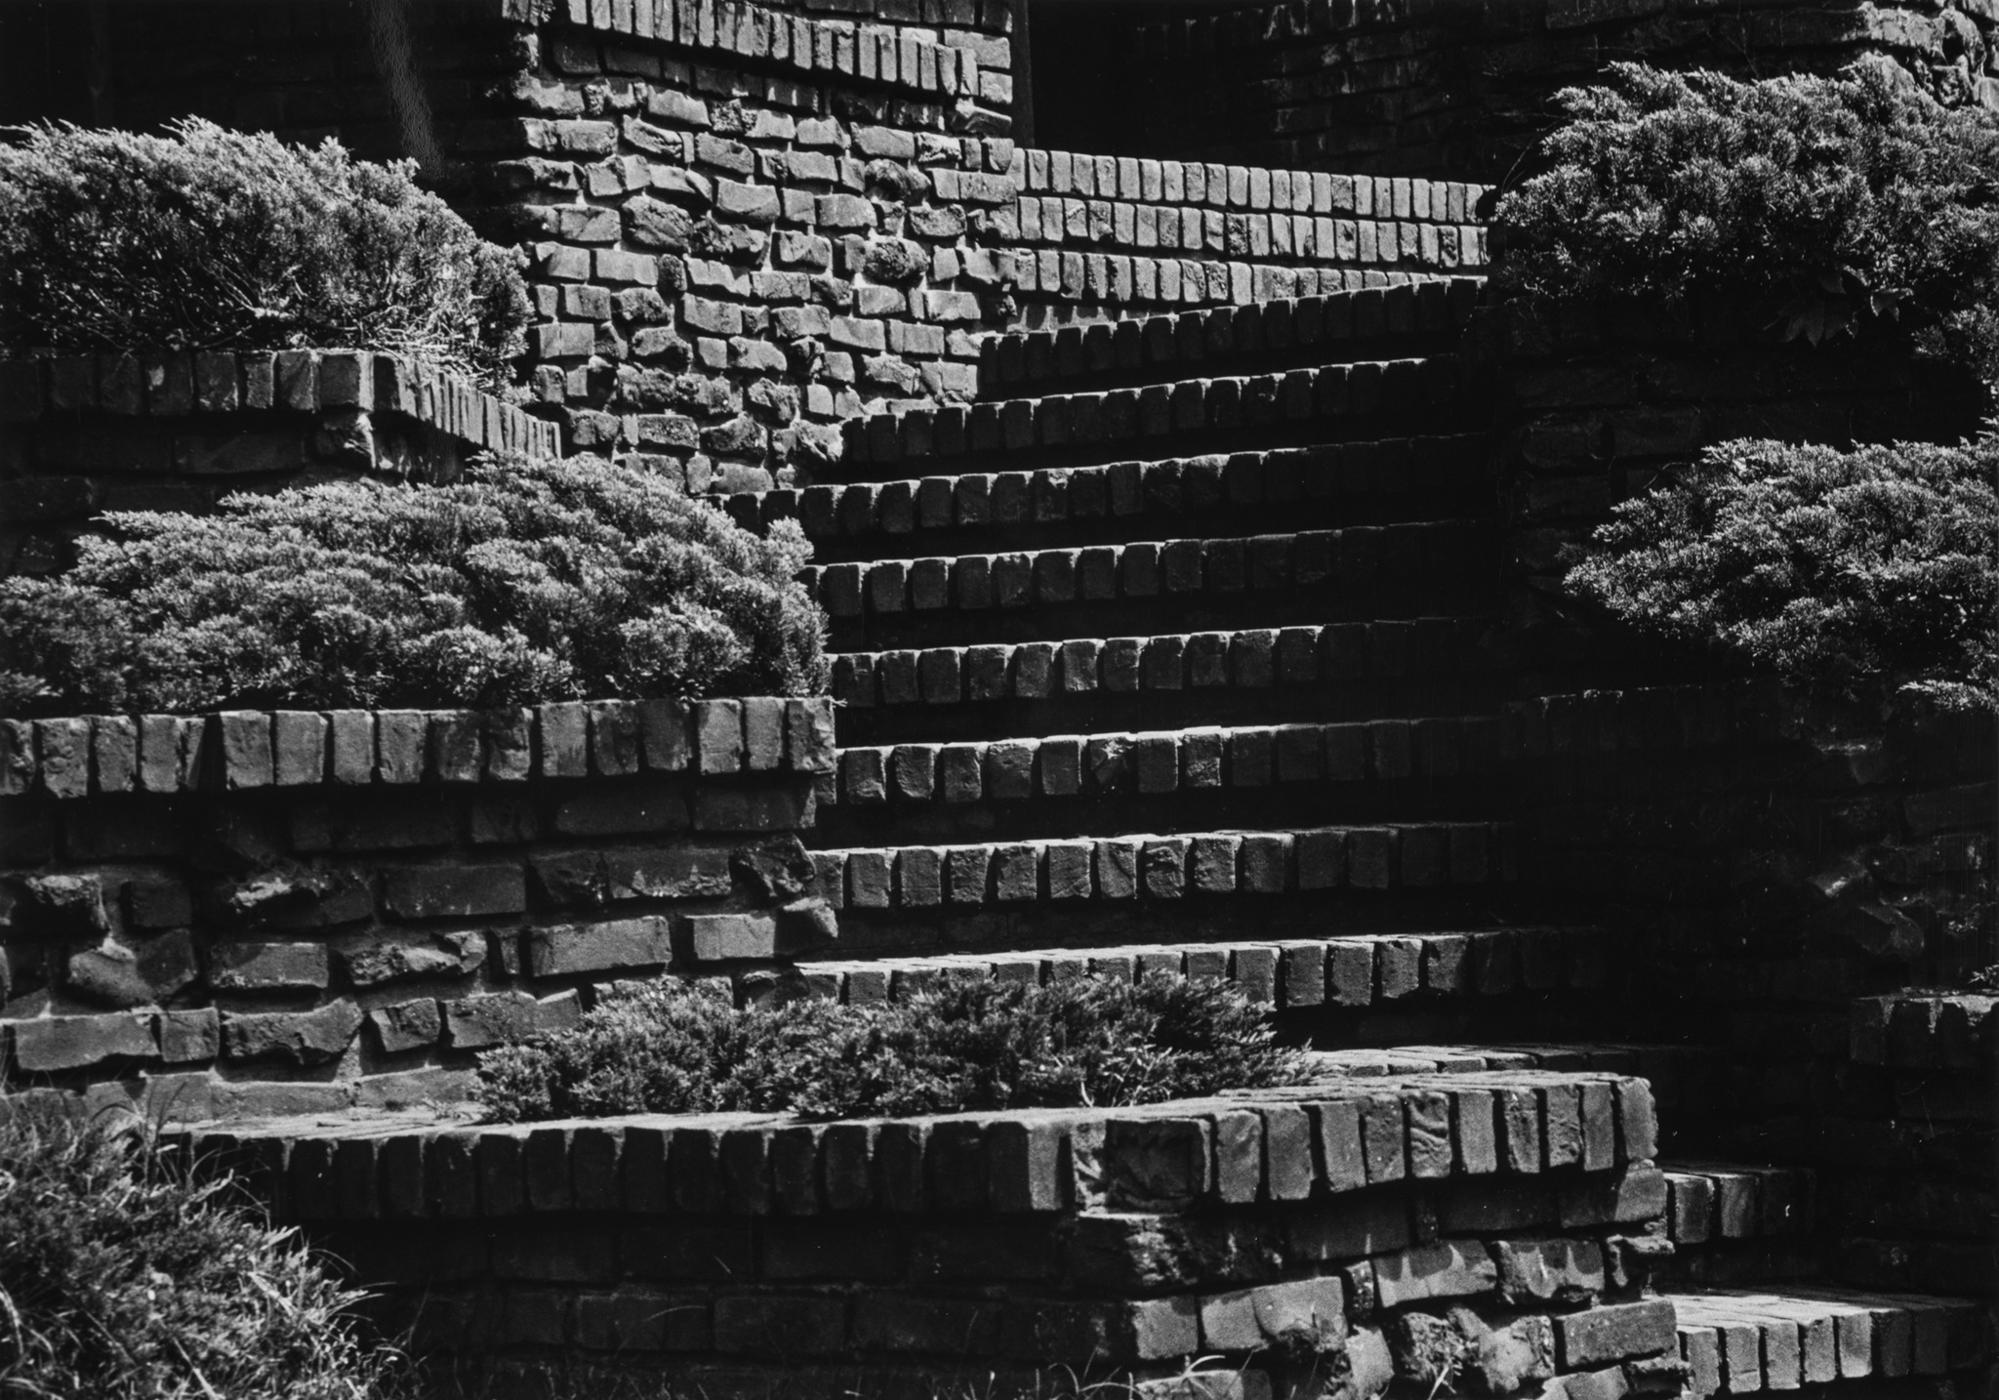 Stairs at the William R. Thorsen House in Berkeley, photographed by Yasuhiro Ishimoto, 1974, gelatin silver print.